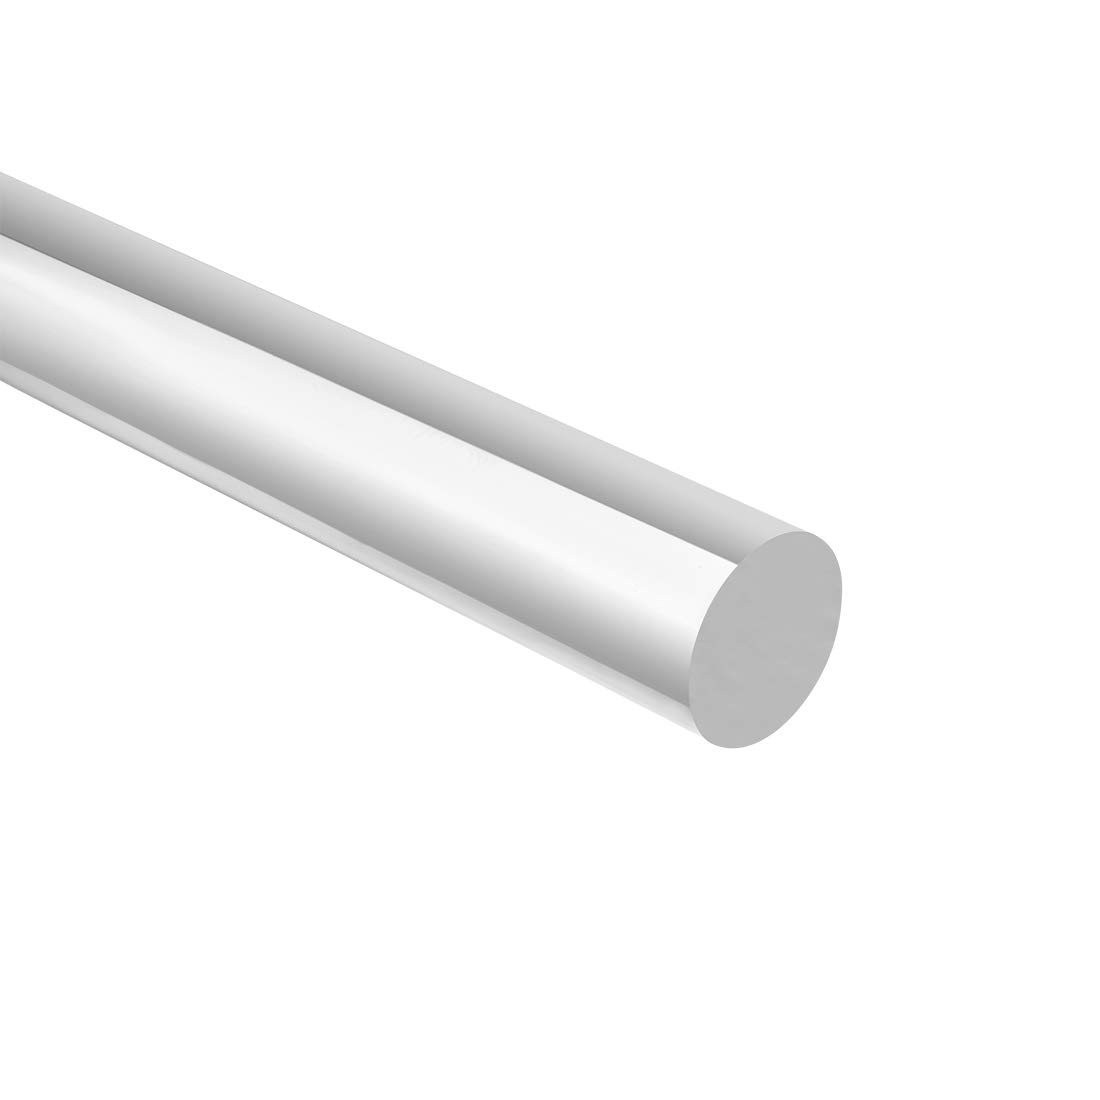 uxcell 15mm Dia 245mm Long Solid Acrylic Round Rod PMMA Bar Clear 2pcs